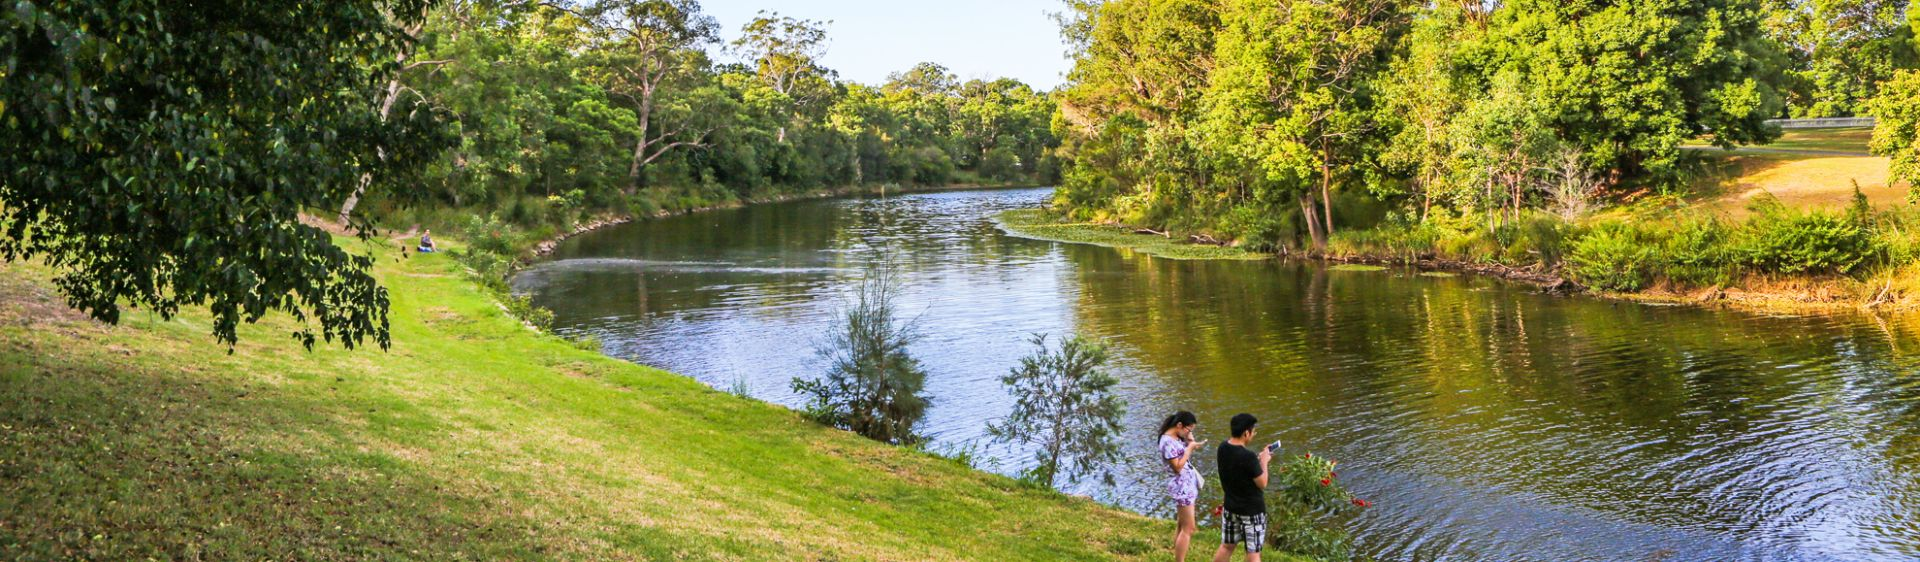 The Parramatta River meanders through picturesque Parramatta Park